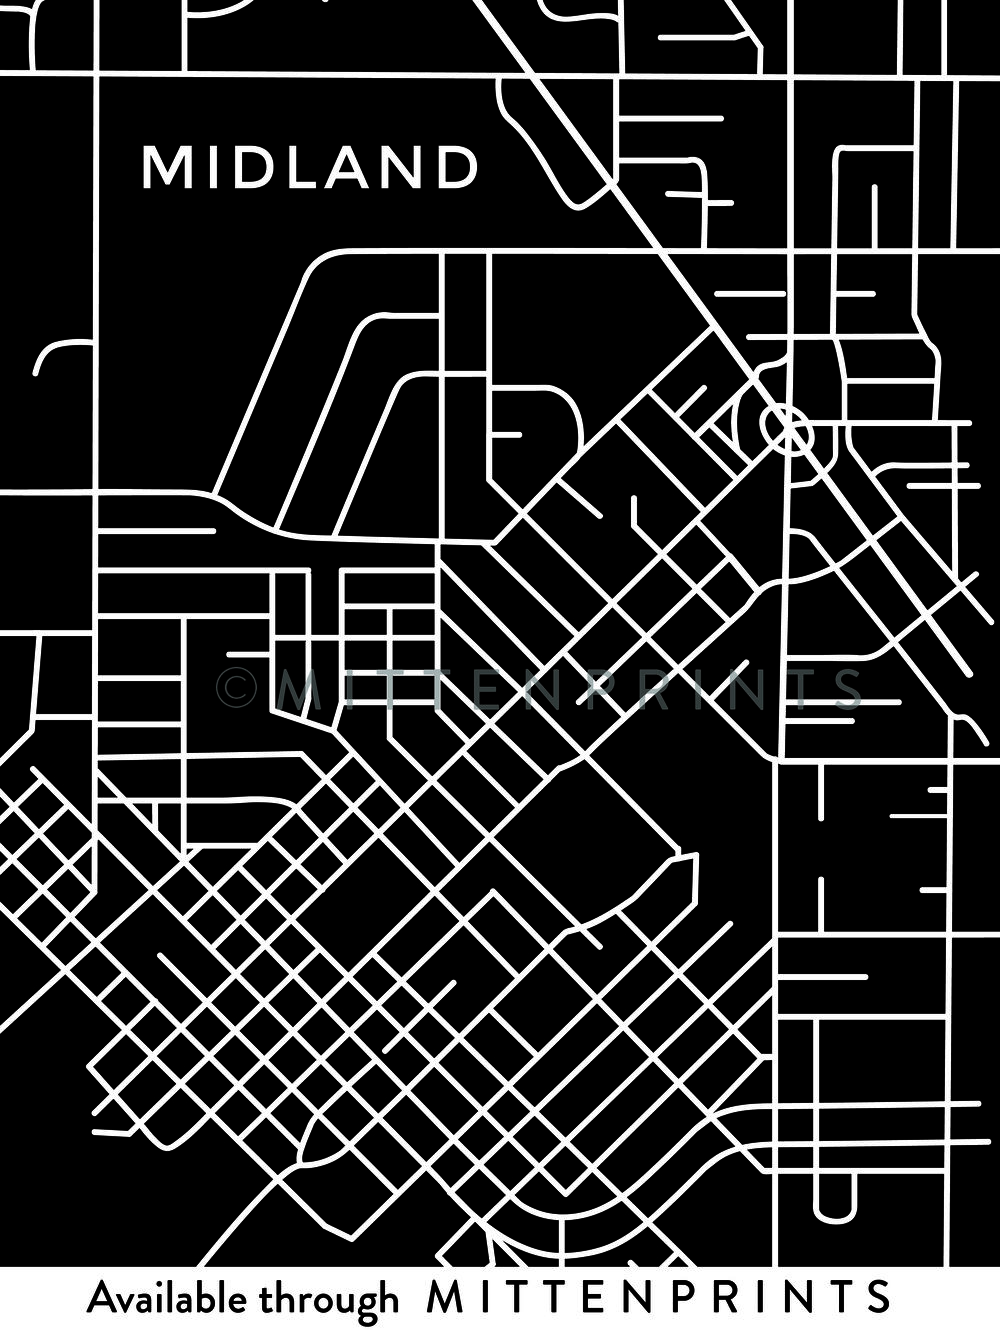 Midland Map BLACK P-01.jpg